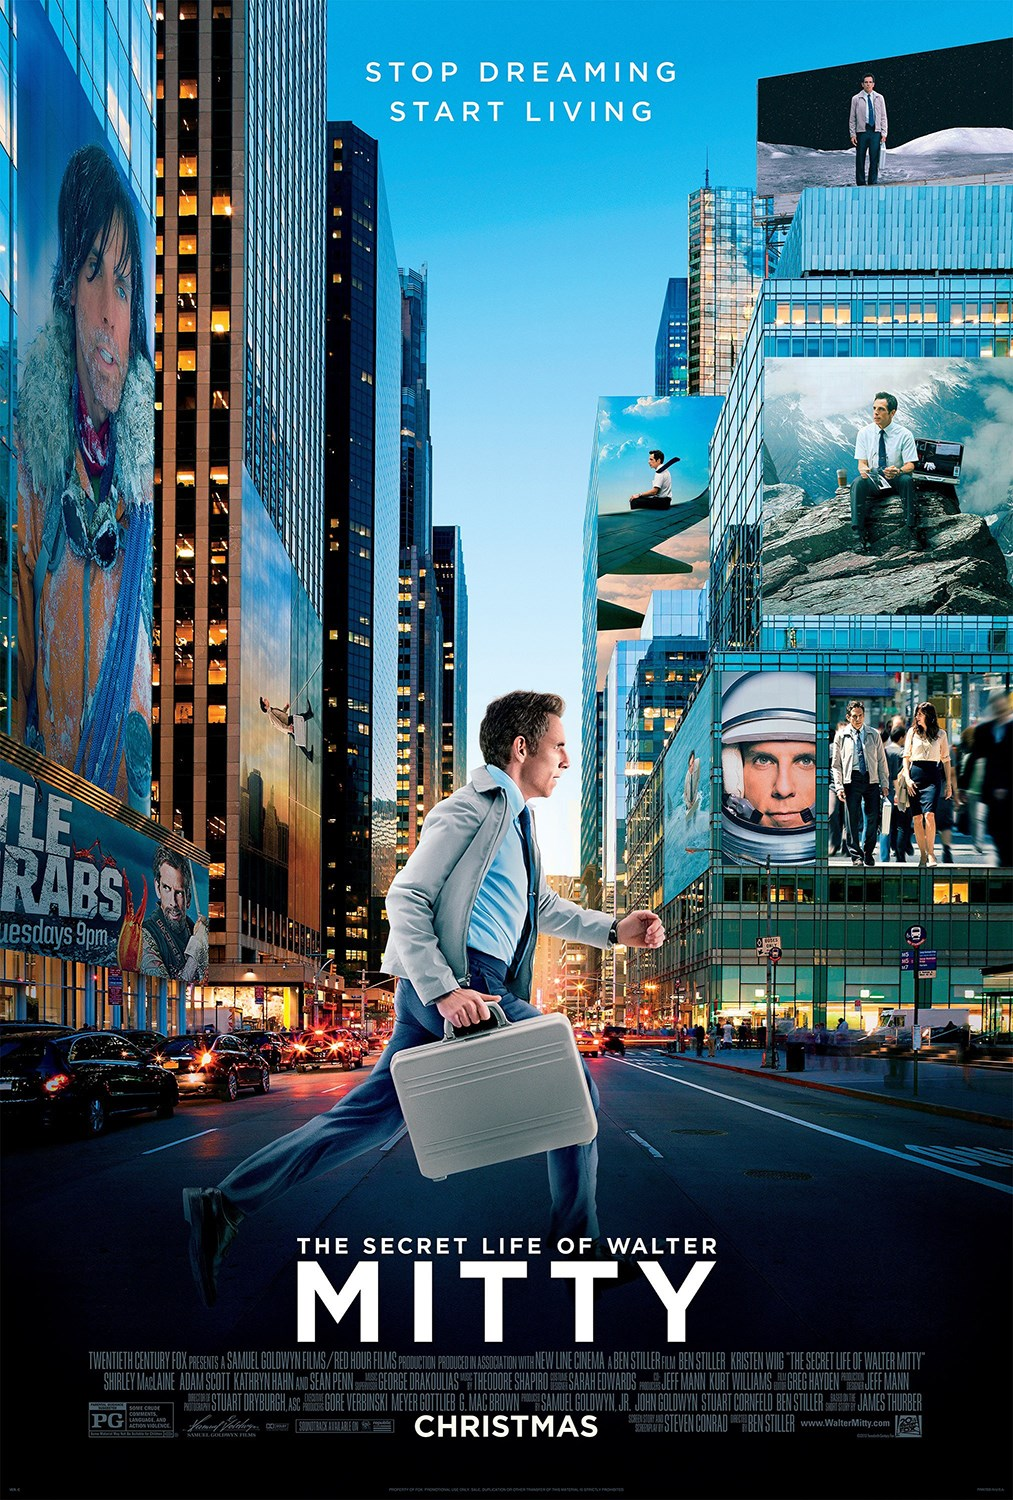 The secret life of walter mitty quizlet